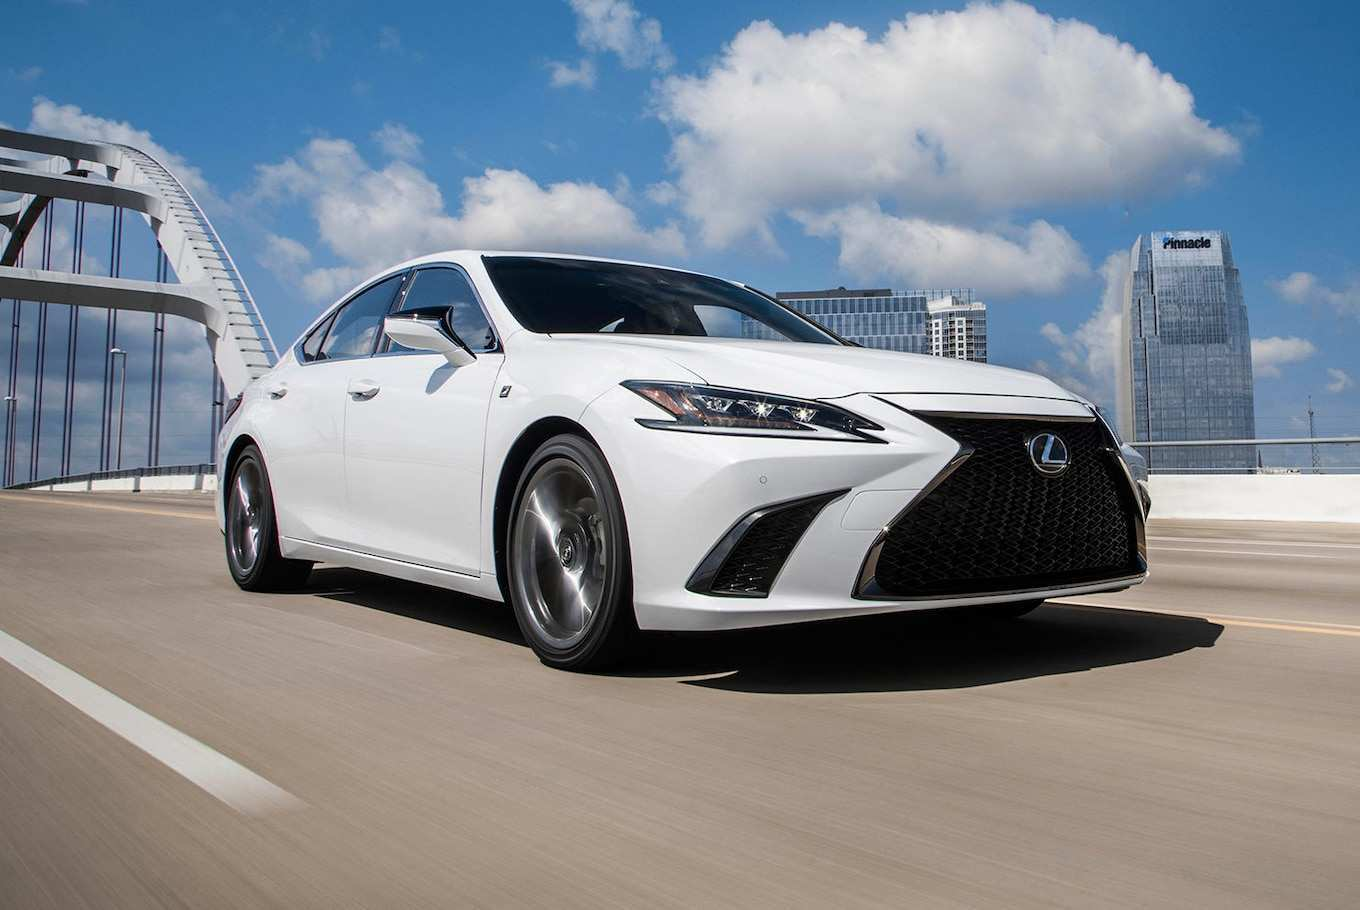 29 New Lexus Es 2020 Test Drive Images with Lexus Es 2020 Test Drive